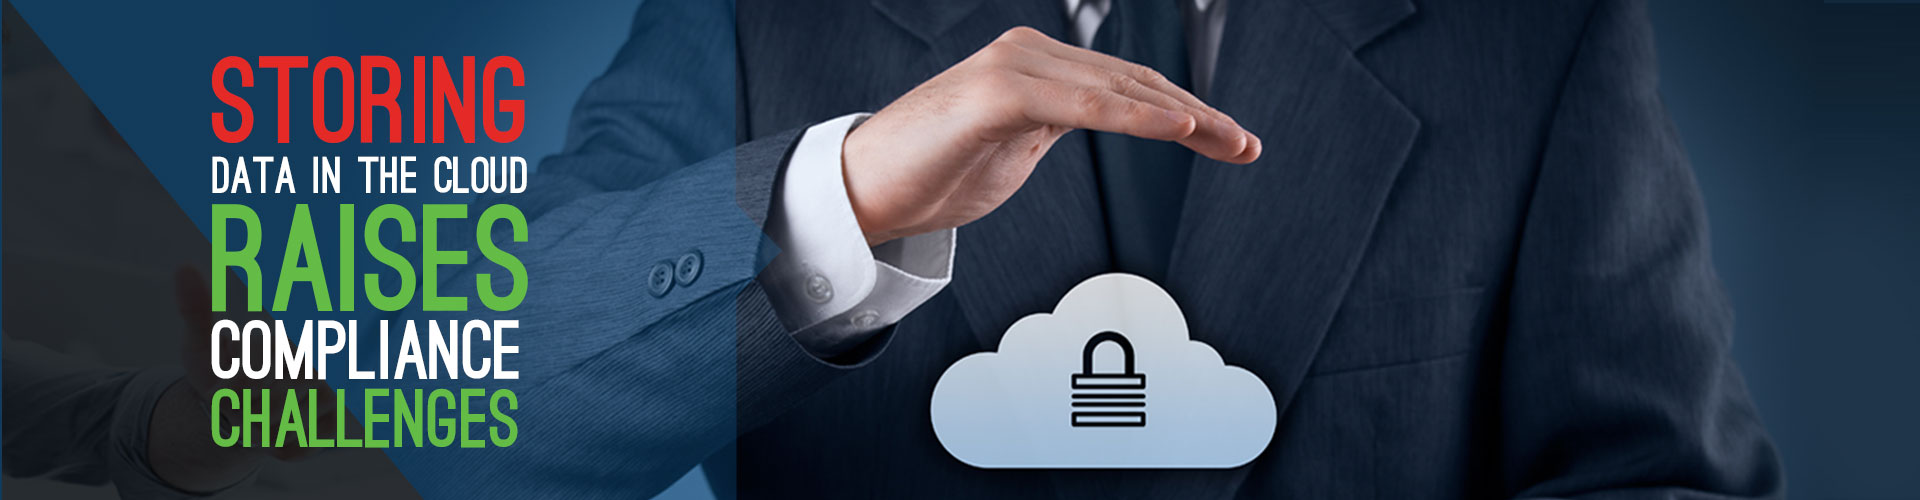 Storing Data In The Cloud Raises Compliance Challenges